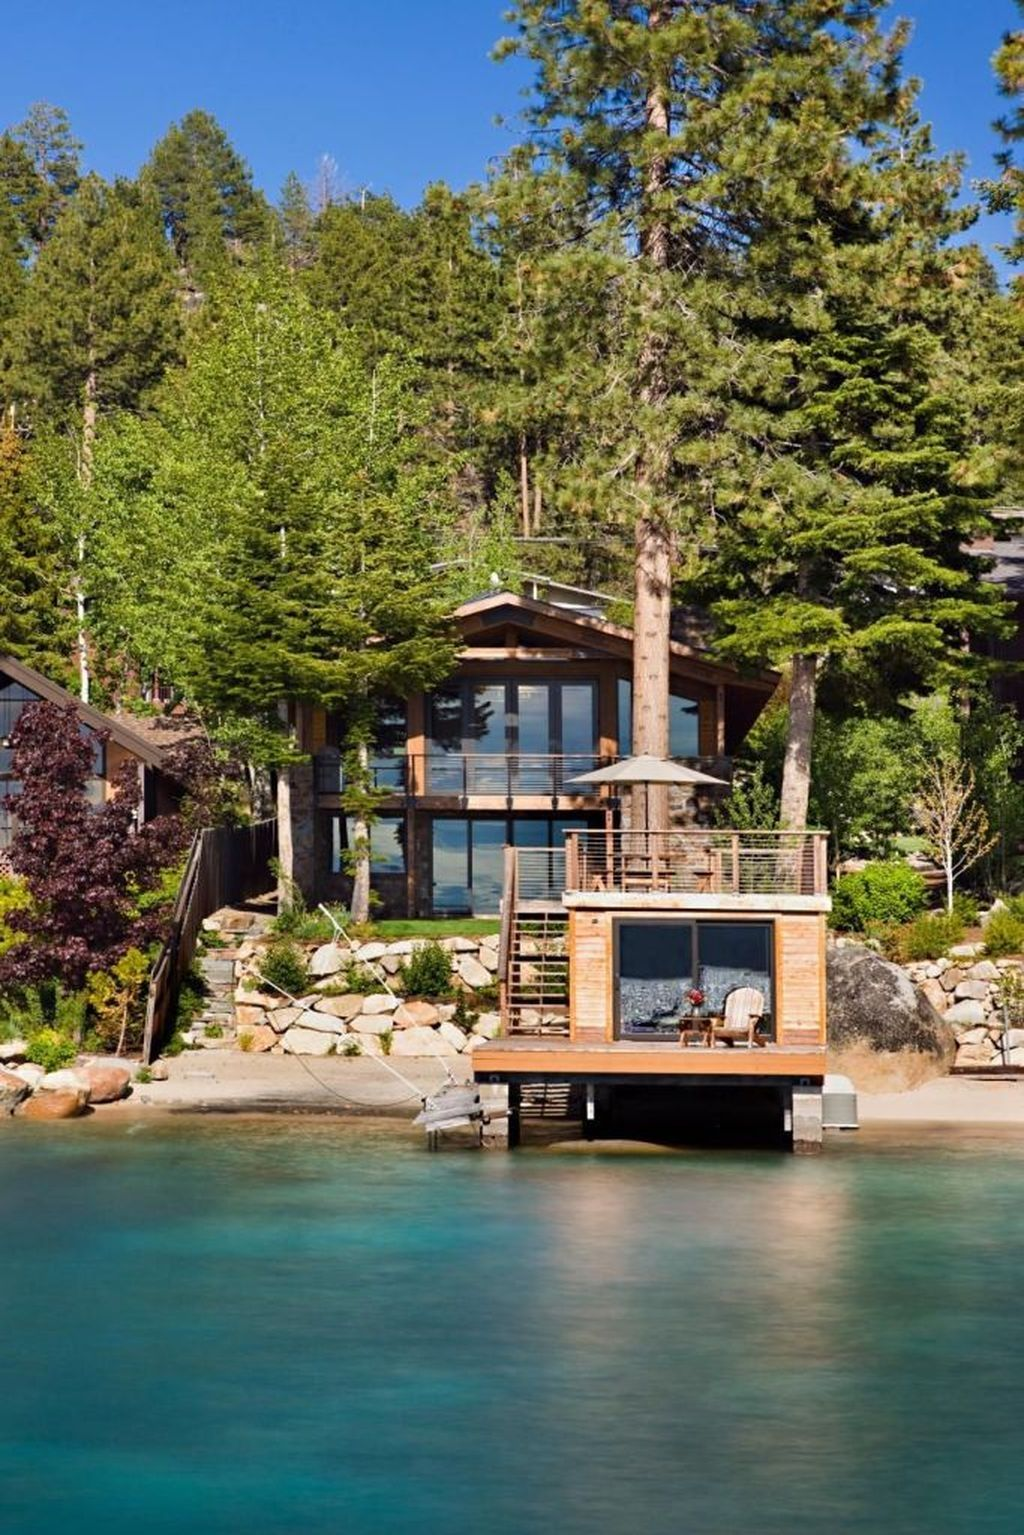 Pin By Shannon Fenton On Cabin Fever Lake Houses Exterior House Designs Exterior Lakefront Property